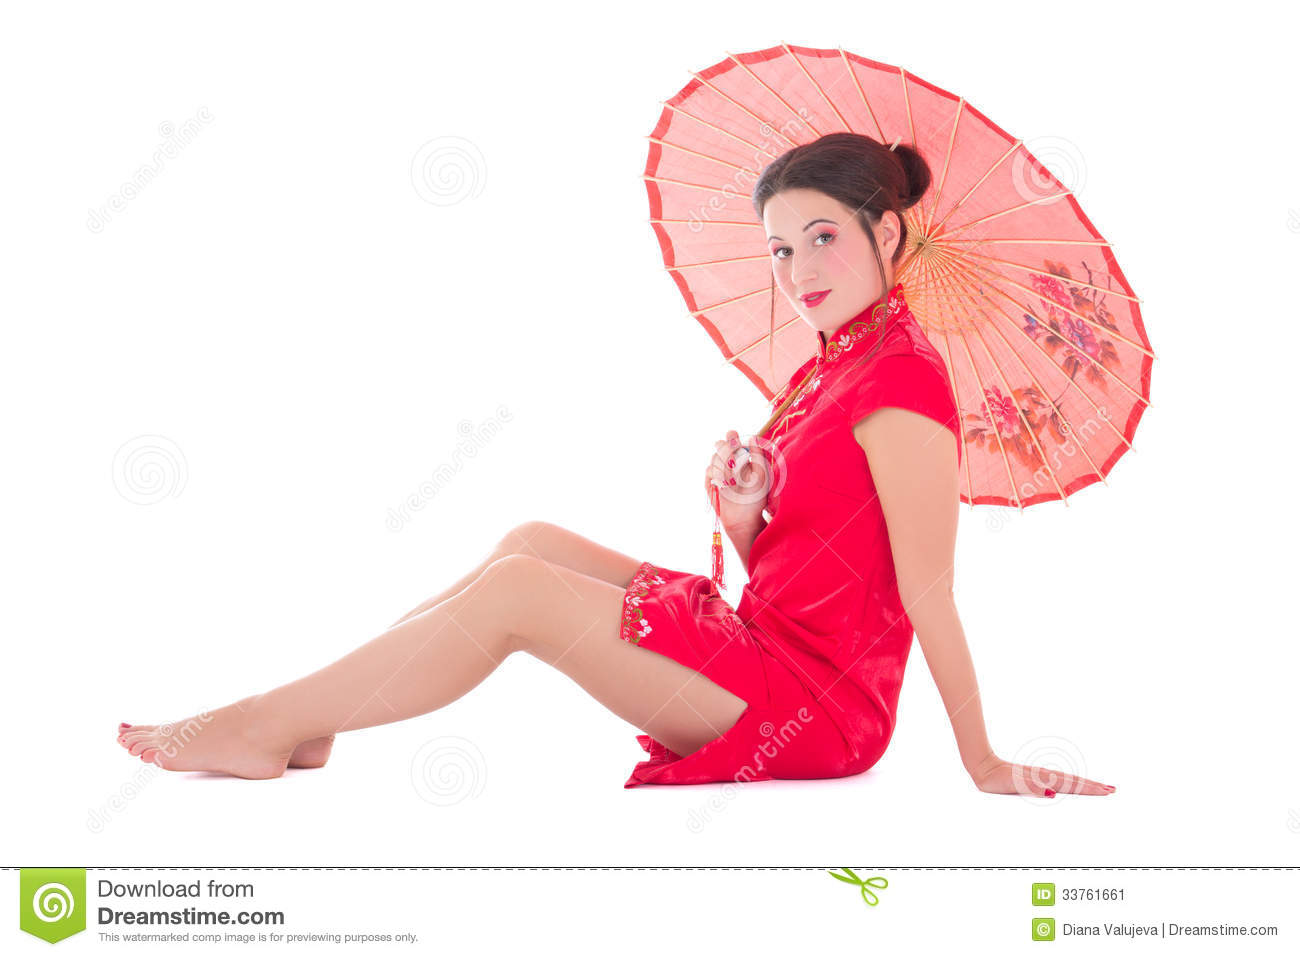 Sitting Girl In Red Japanese Dress With Umbrella Isolated